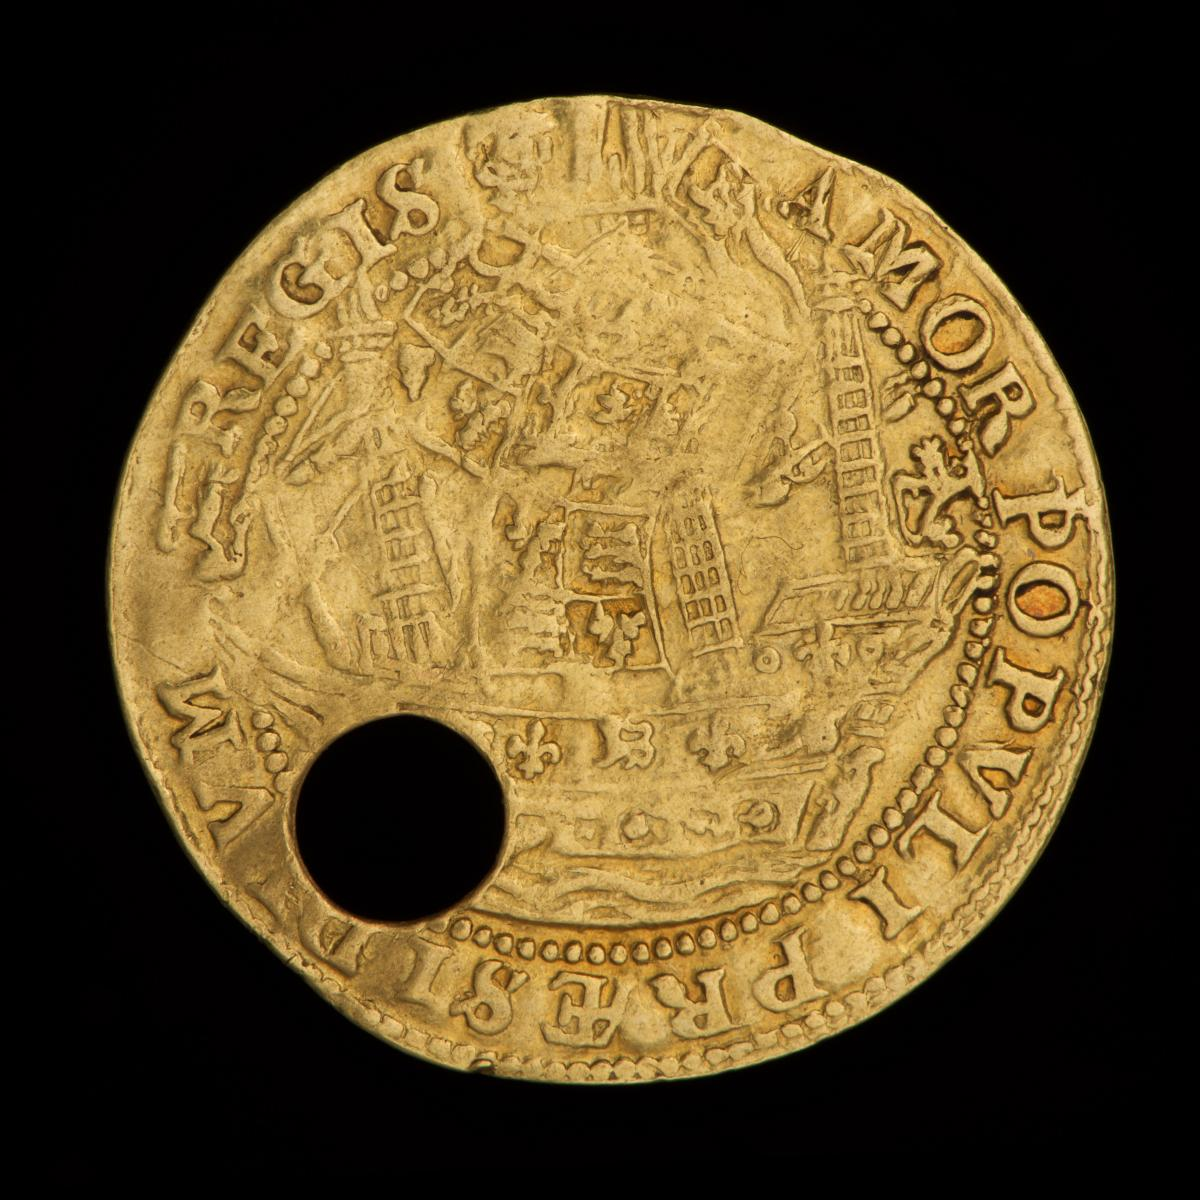 Back of a pierced gold coin with a ship